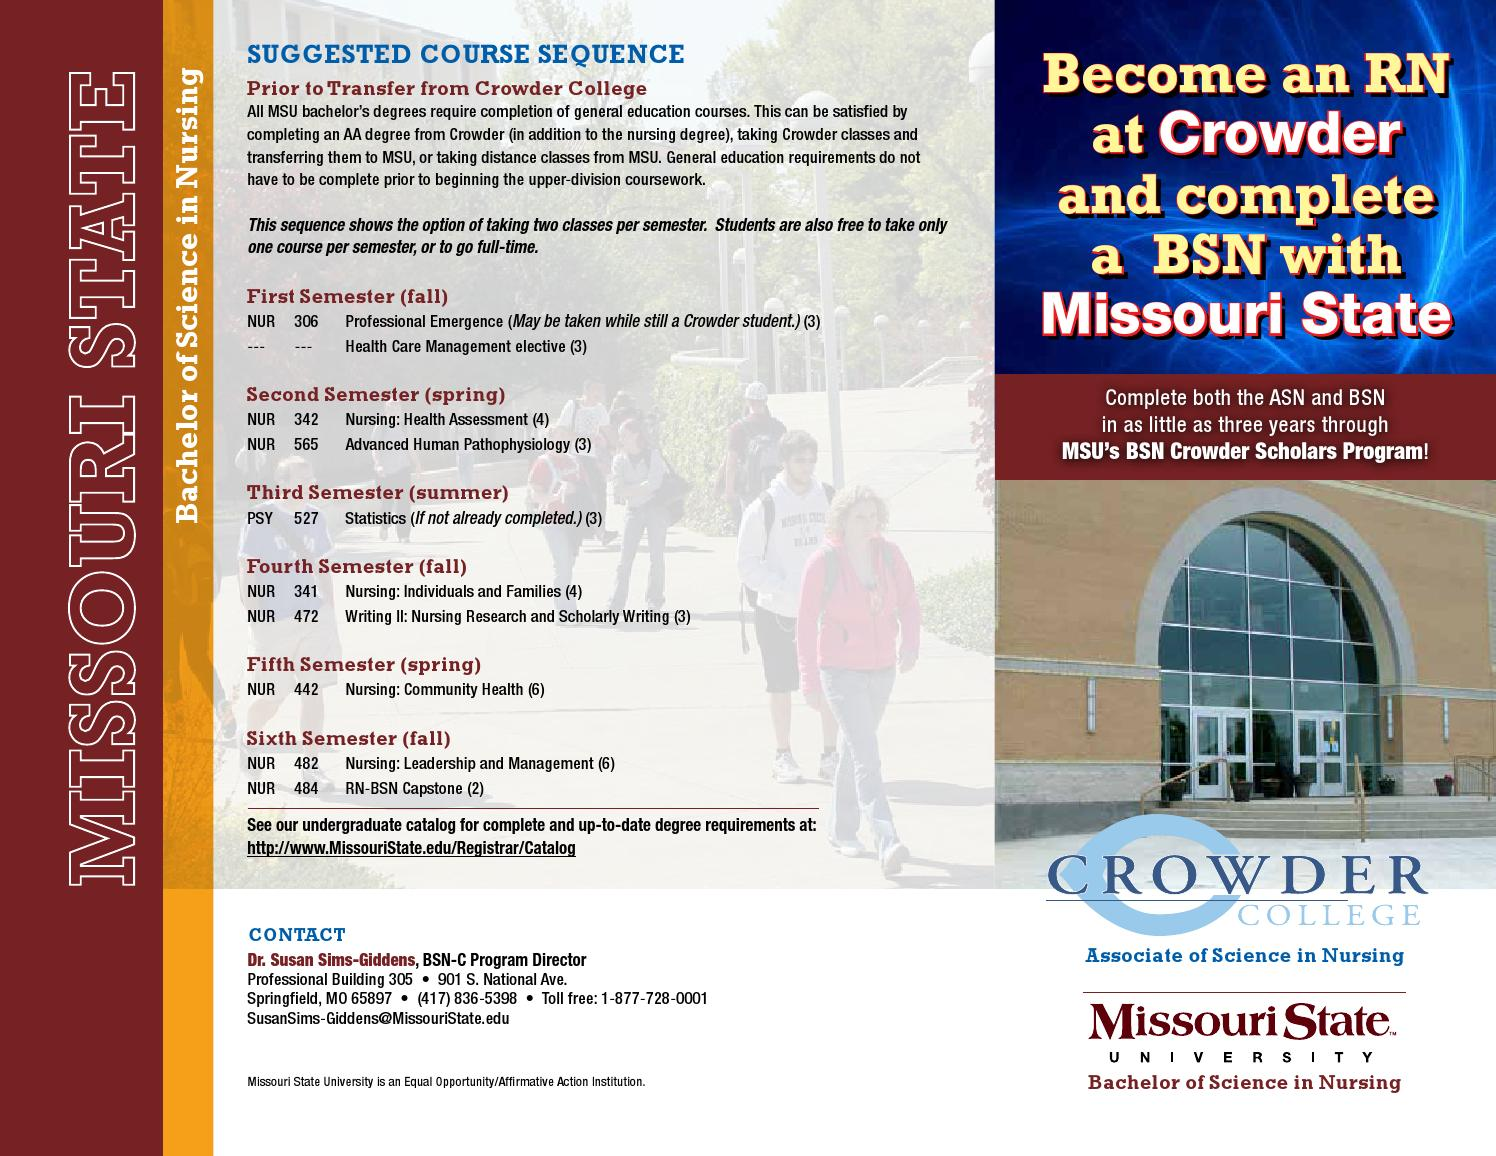 Earn an rn from crowder college and a bsn from missouri state by earn an rn from crowder college and a bsn from missouri state by missouri state university outreach issuu 1betcityfo Images